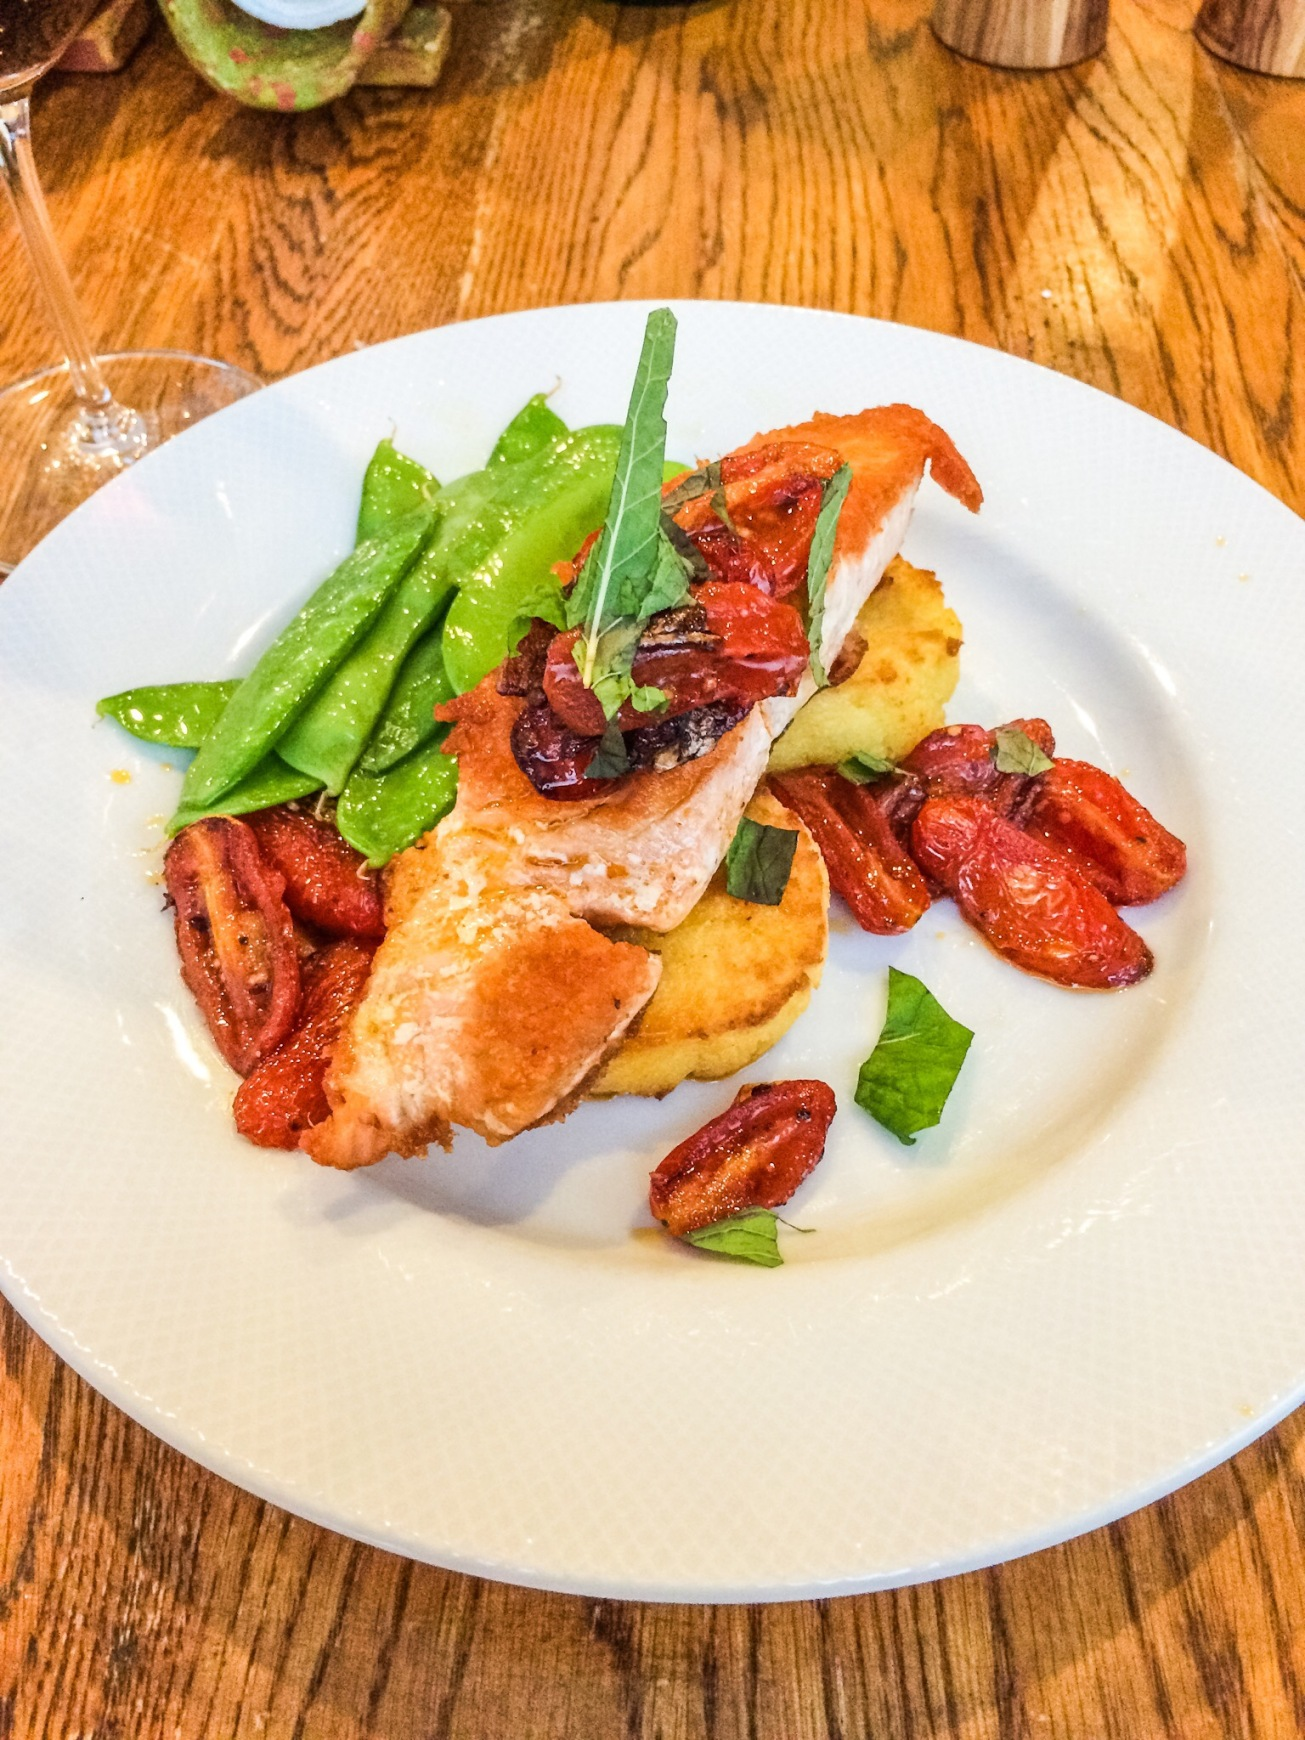 pan seared Verlasso salmon on Polenta cakes